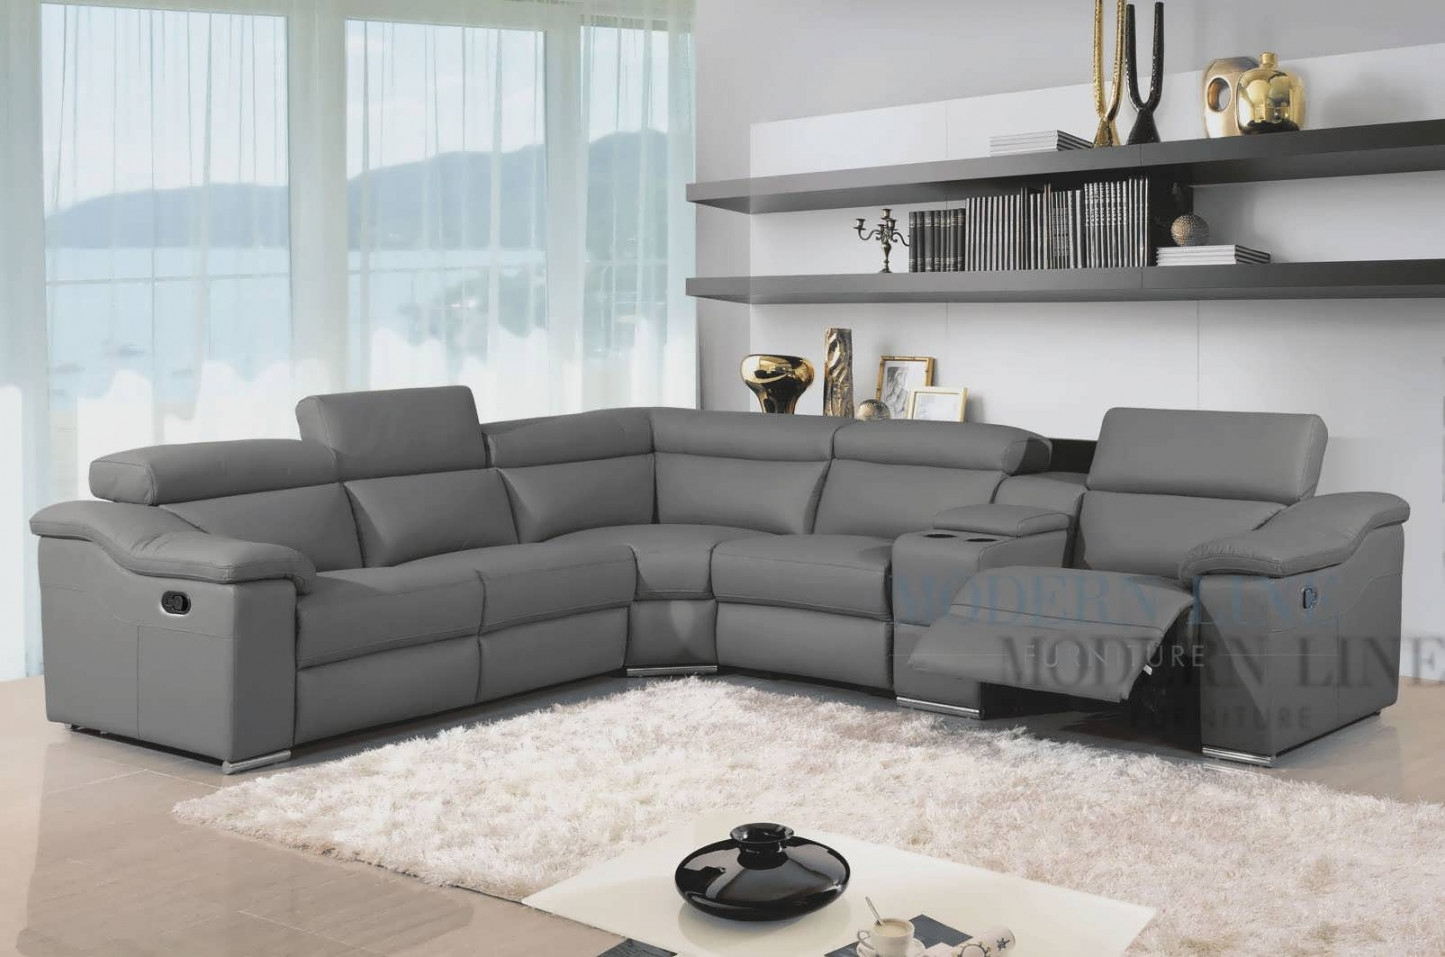 Sofa : Sectional Sofas With Recliners Leather Sectional Sofa | House Intended For Sectional Sofas With Recliners Leather (View 4 of 10)